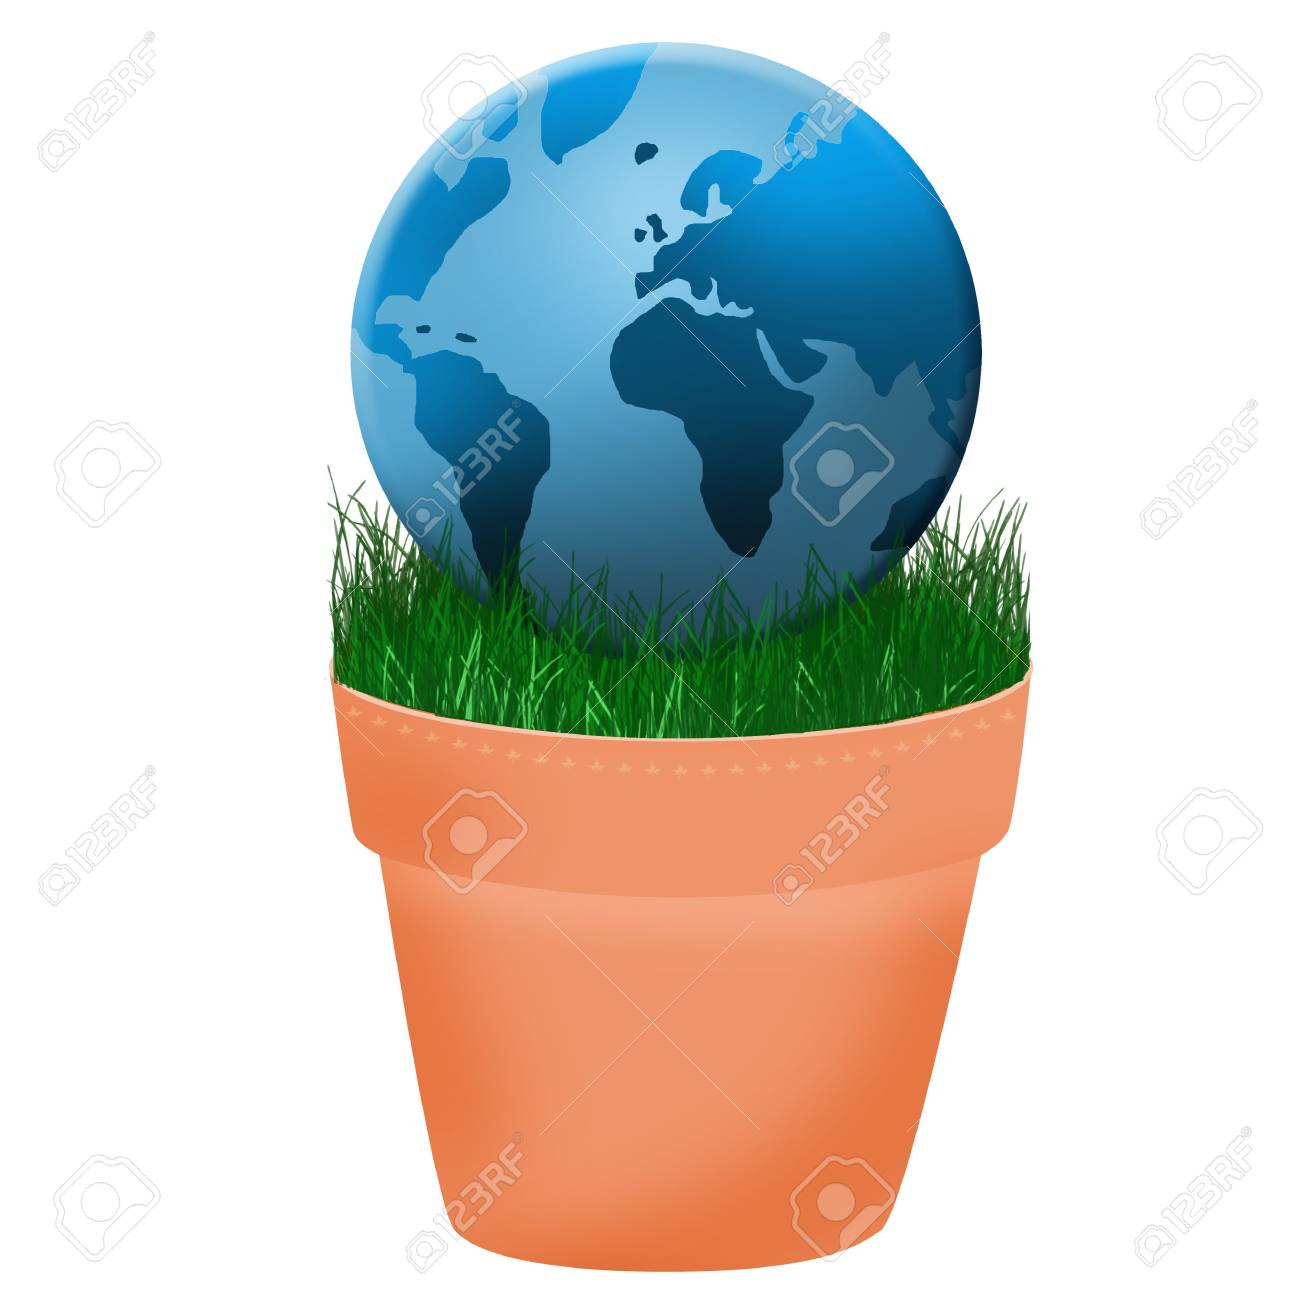 globe placed in the flower pot Stock Photo - 6929024